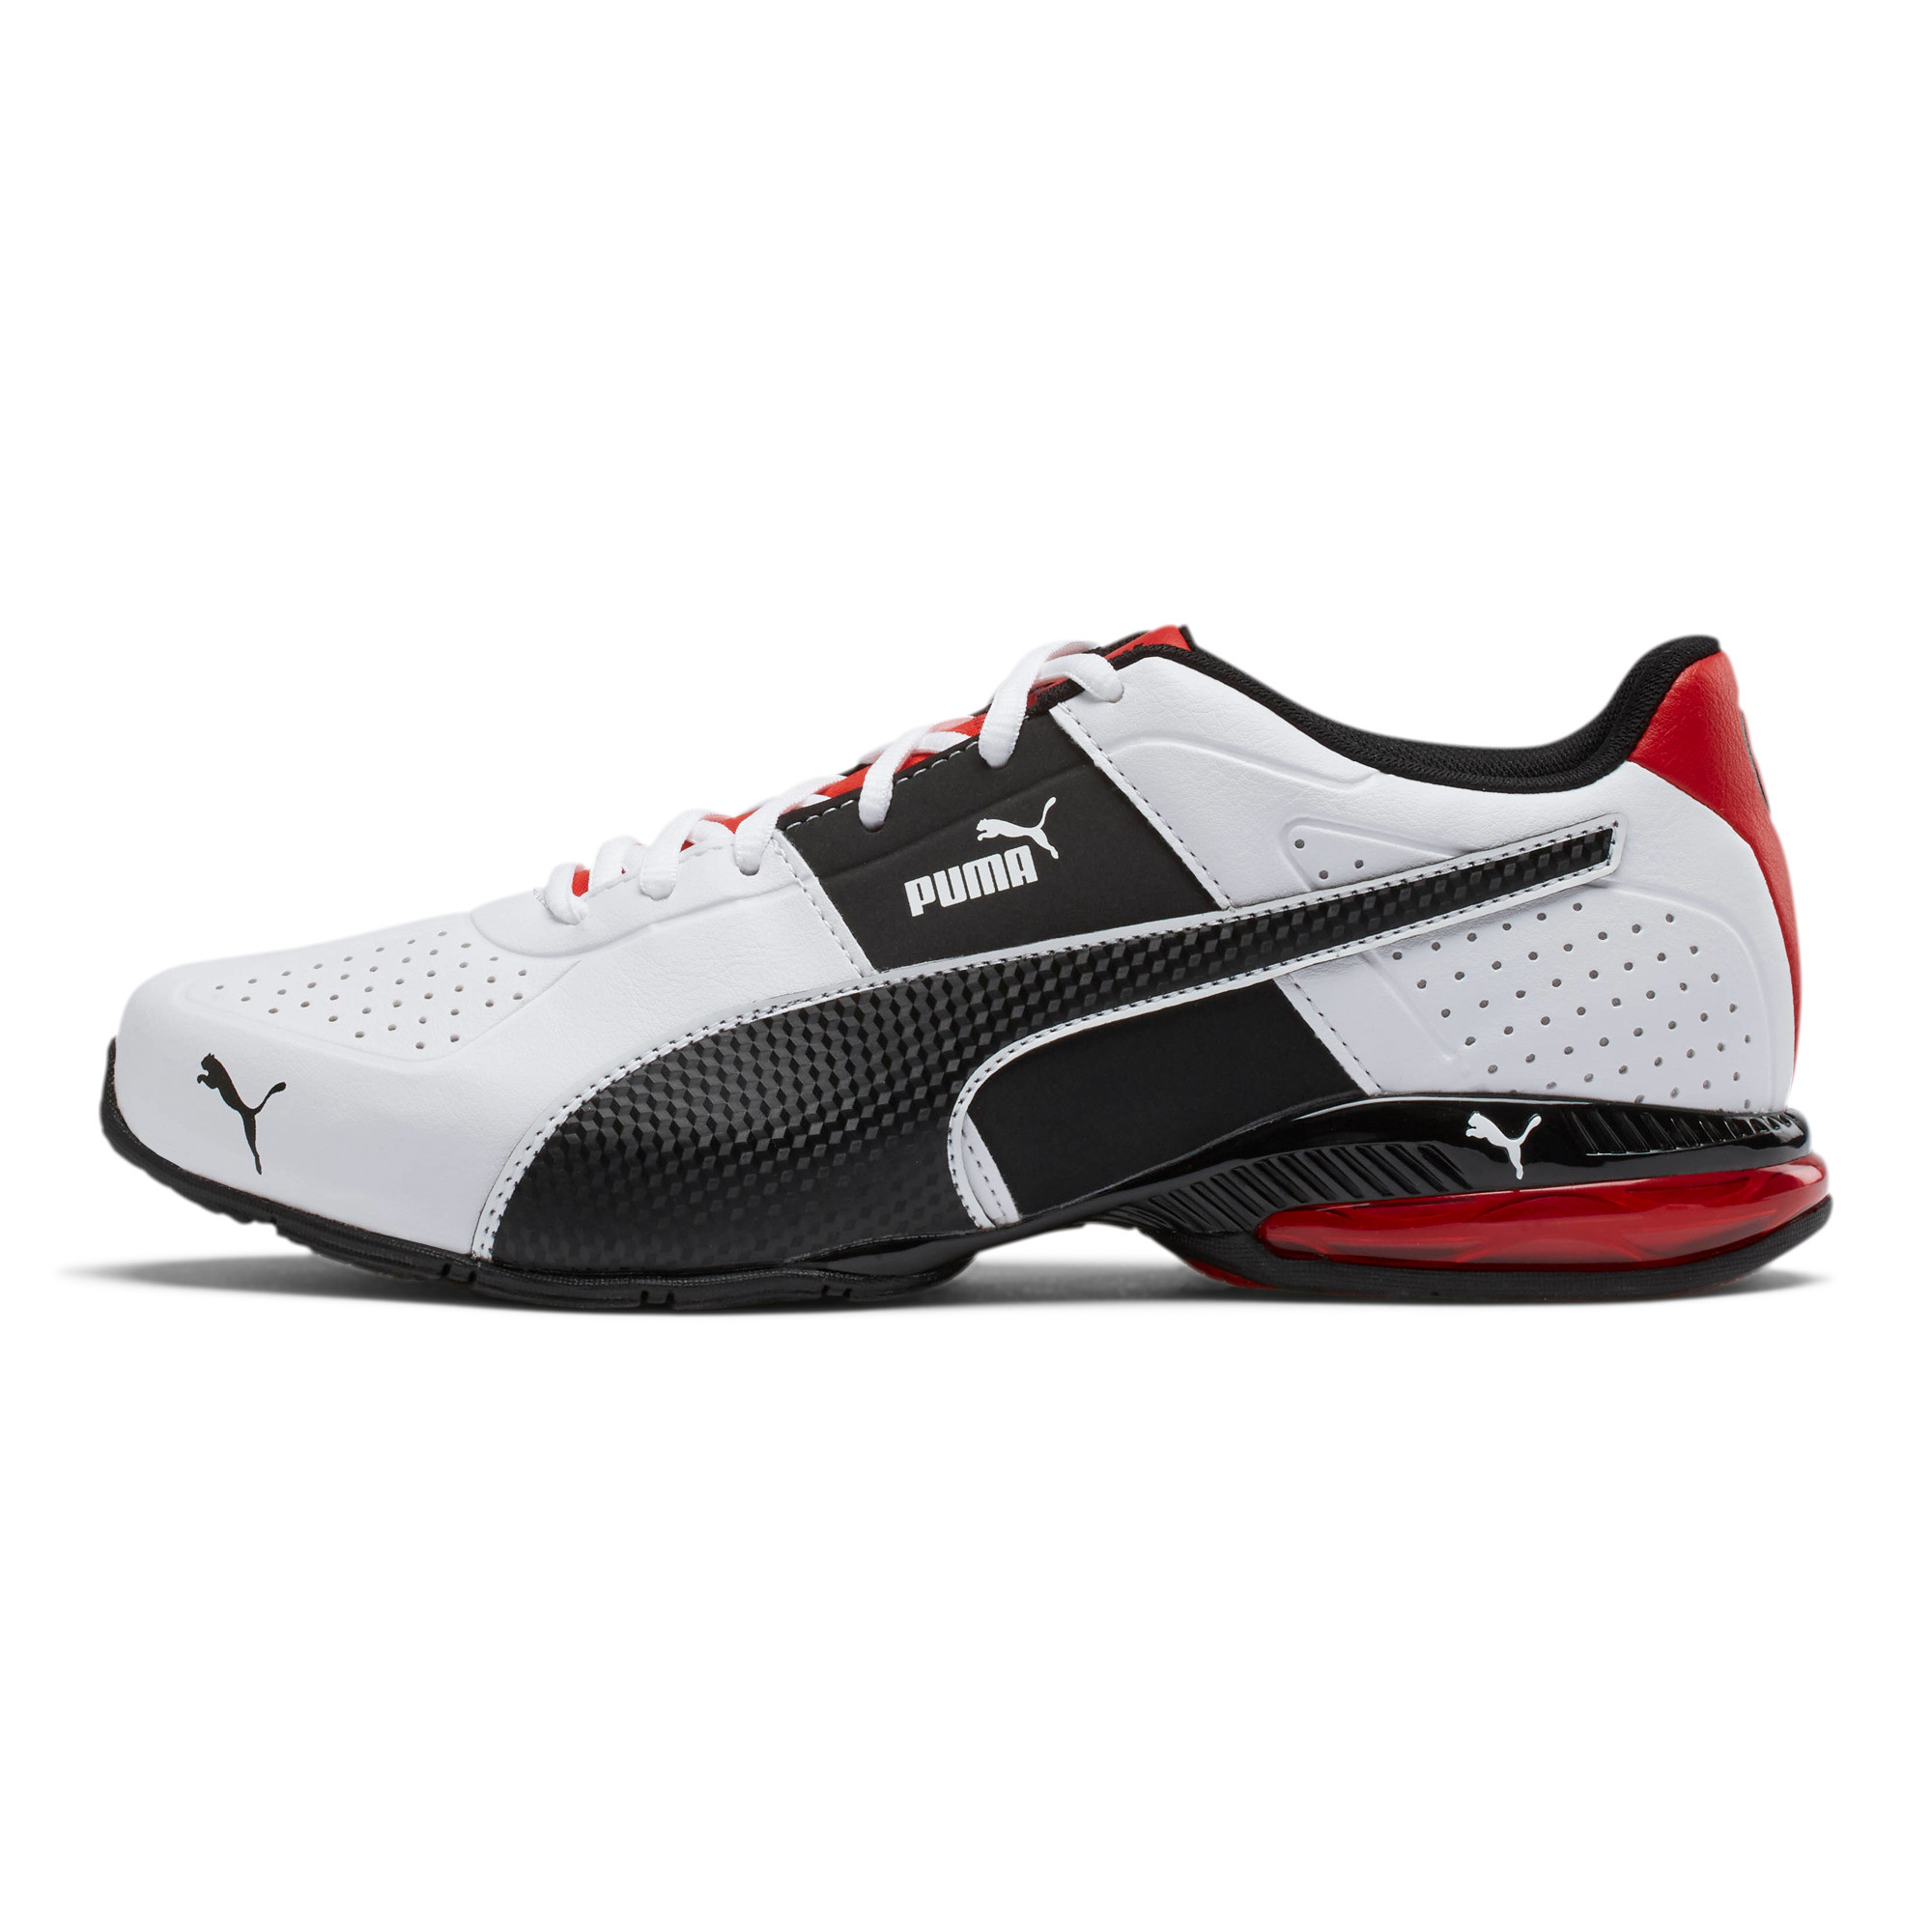 PUMA-Men-039-s-CELL-Surin-2-FM-Running-Shoes thumbnail 18